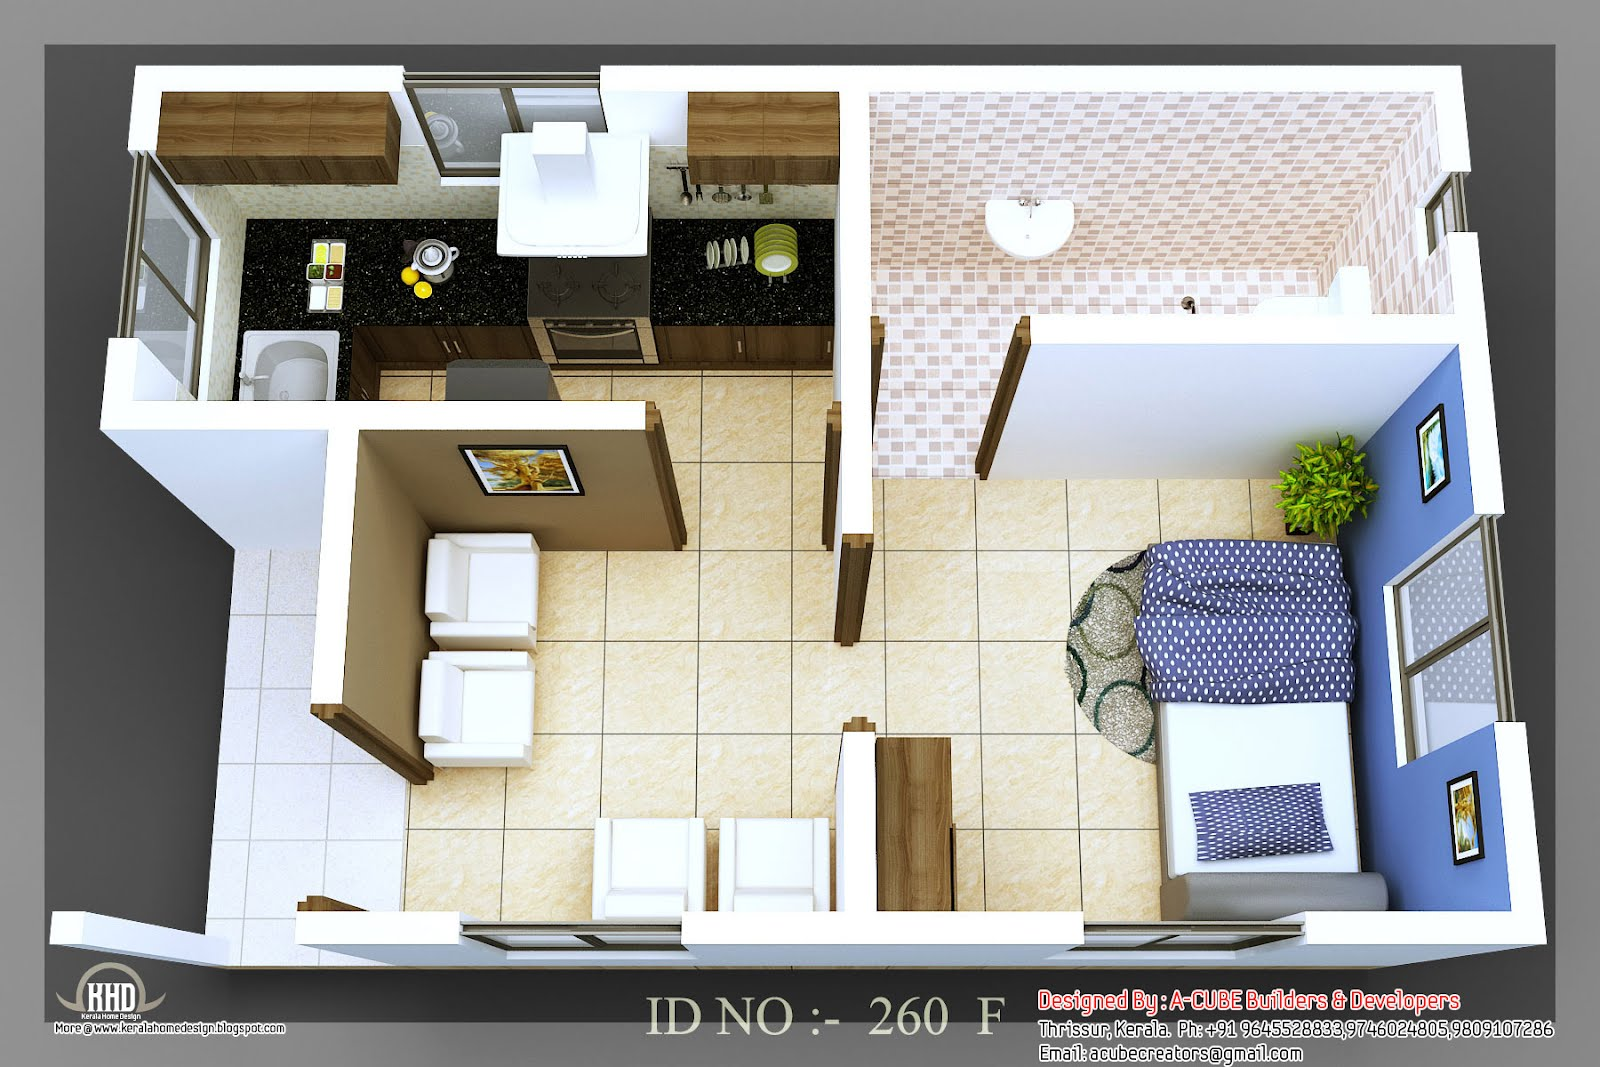 3d isometric views of small house plans home appliance for 3d view of house interior design